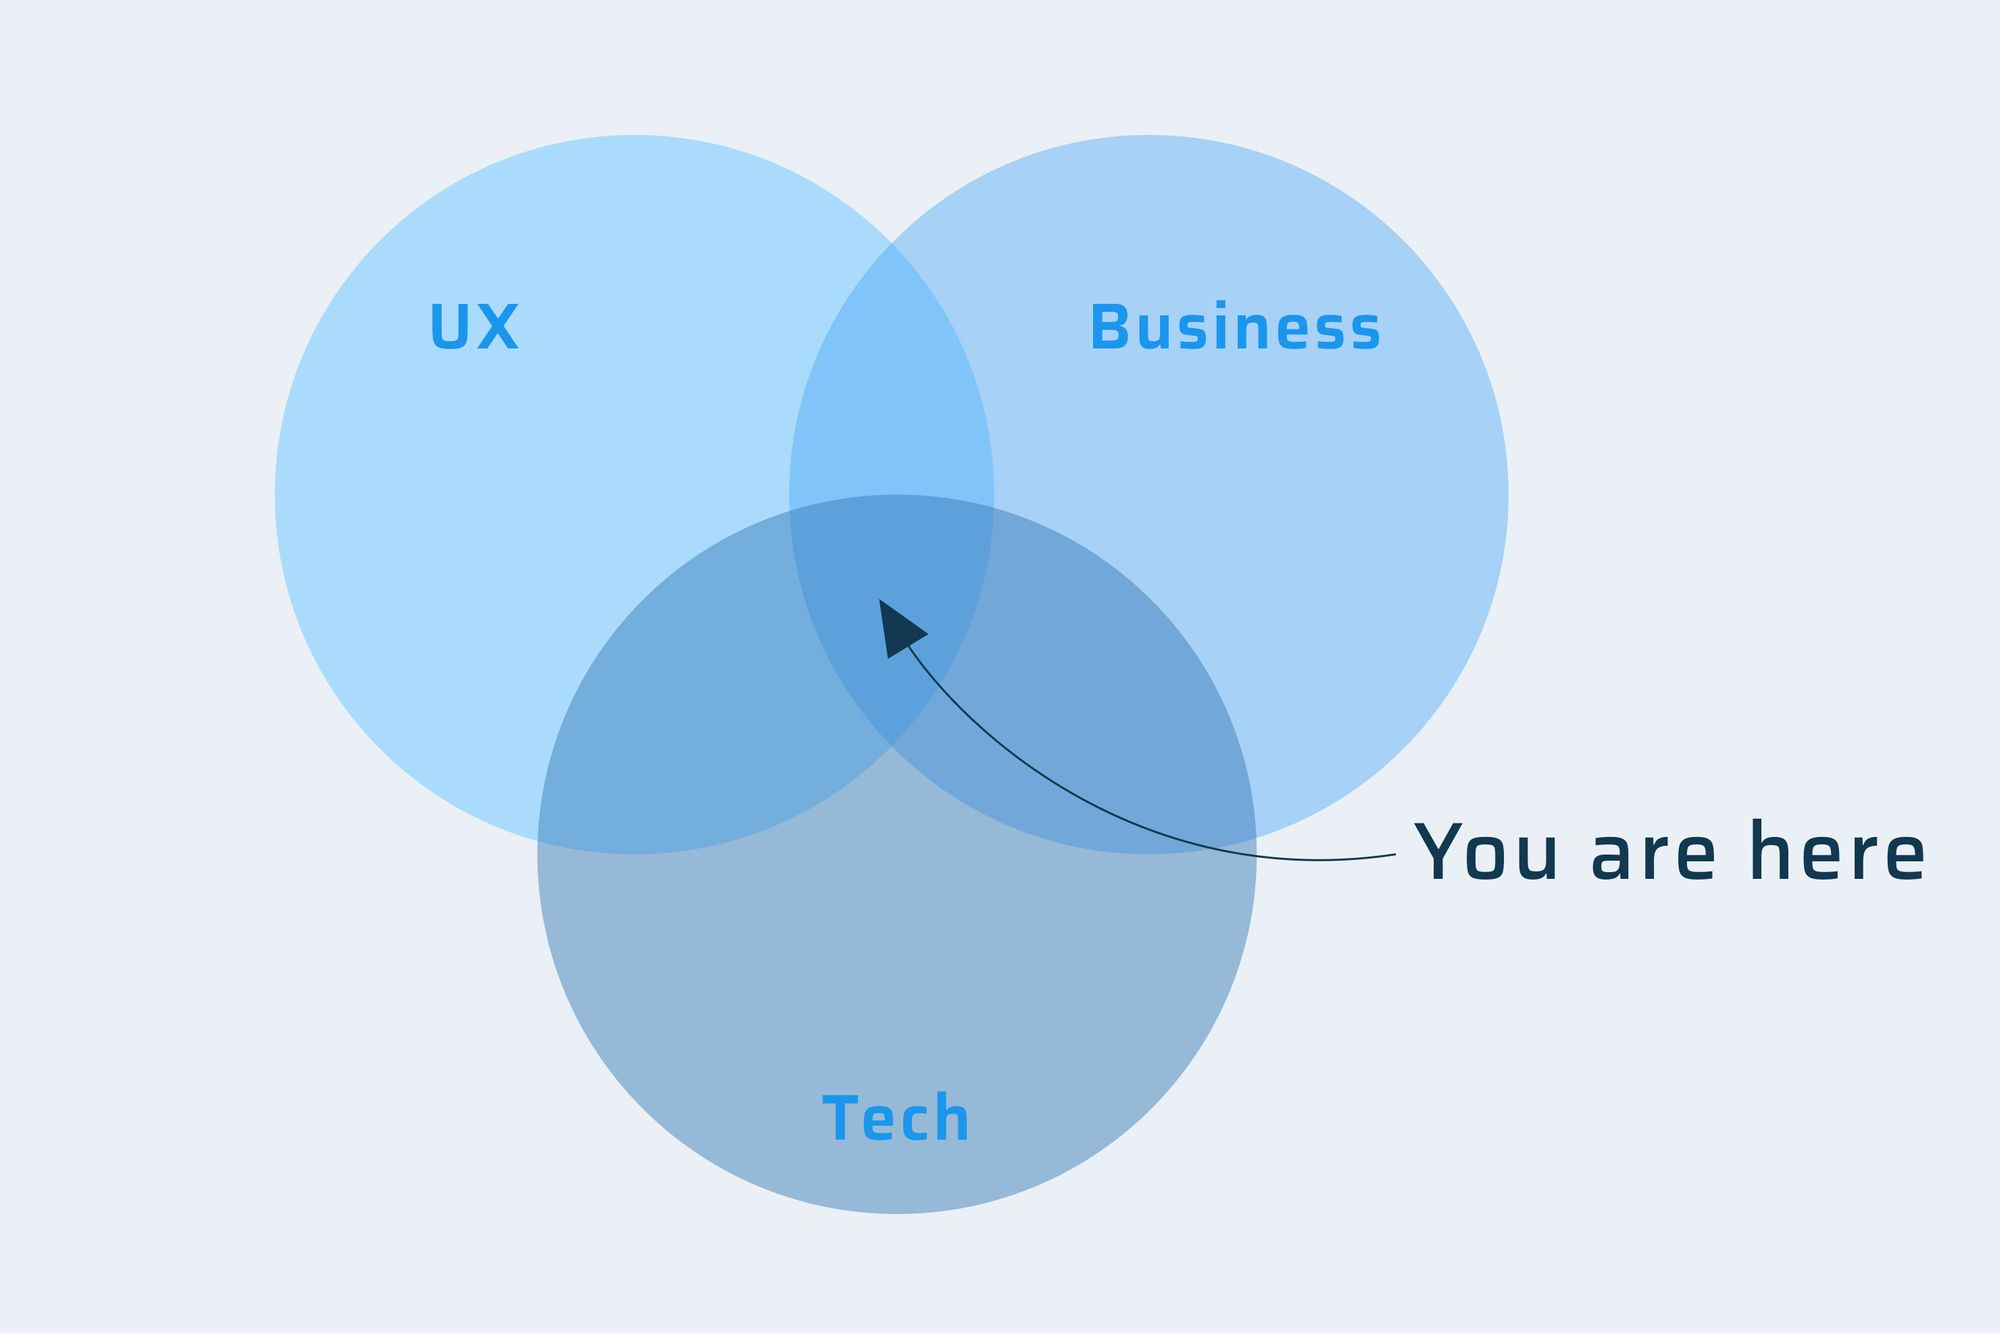 Product management is the intersection between business, technology, and UX.